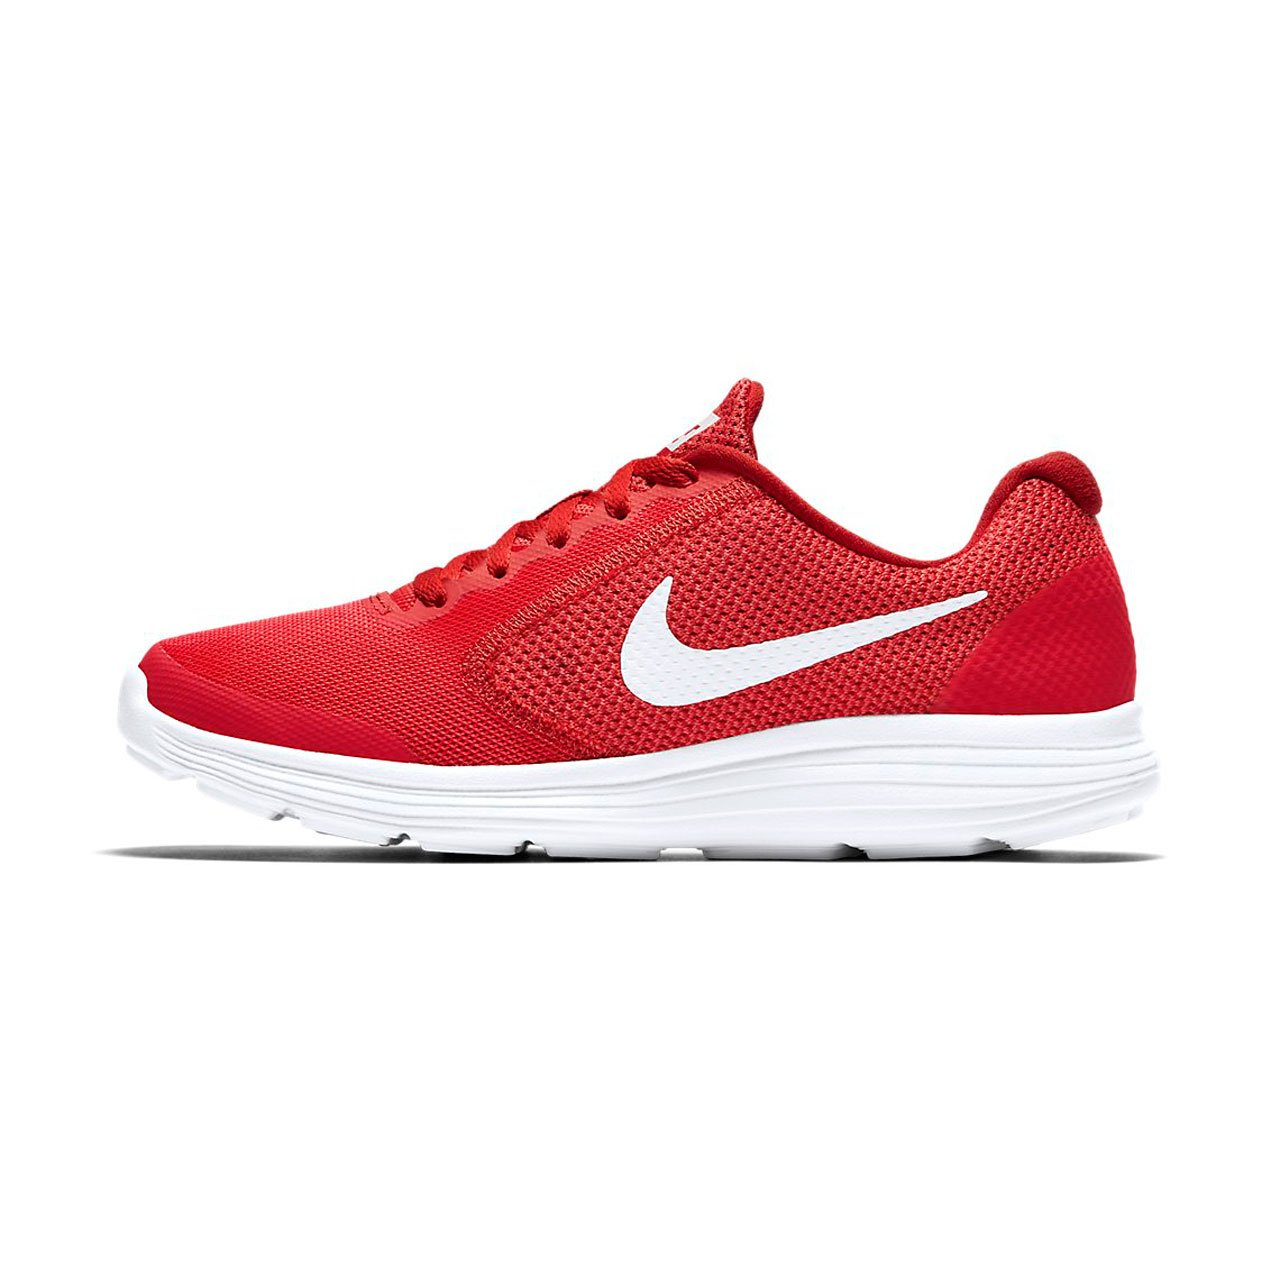 NIKE ' Revolution 3 (GS) Running Shoes B007KQ5P8O 4.5 M US Big Kid|Track Red/White/University Red